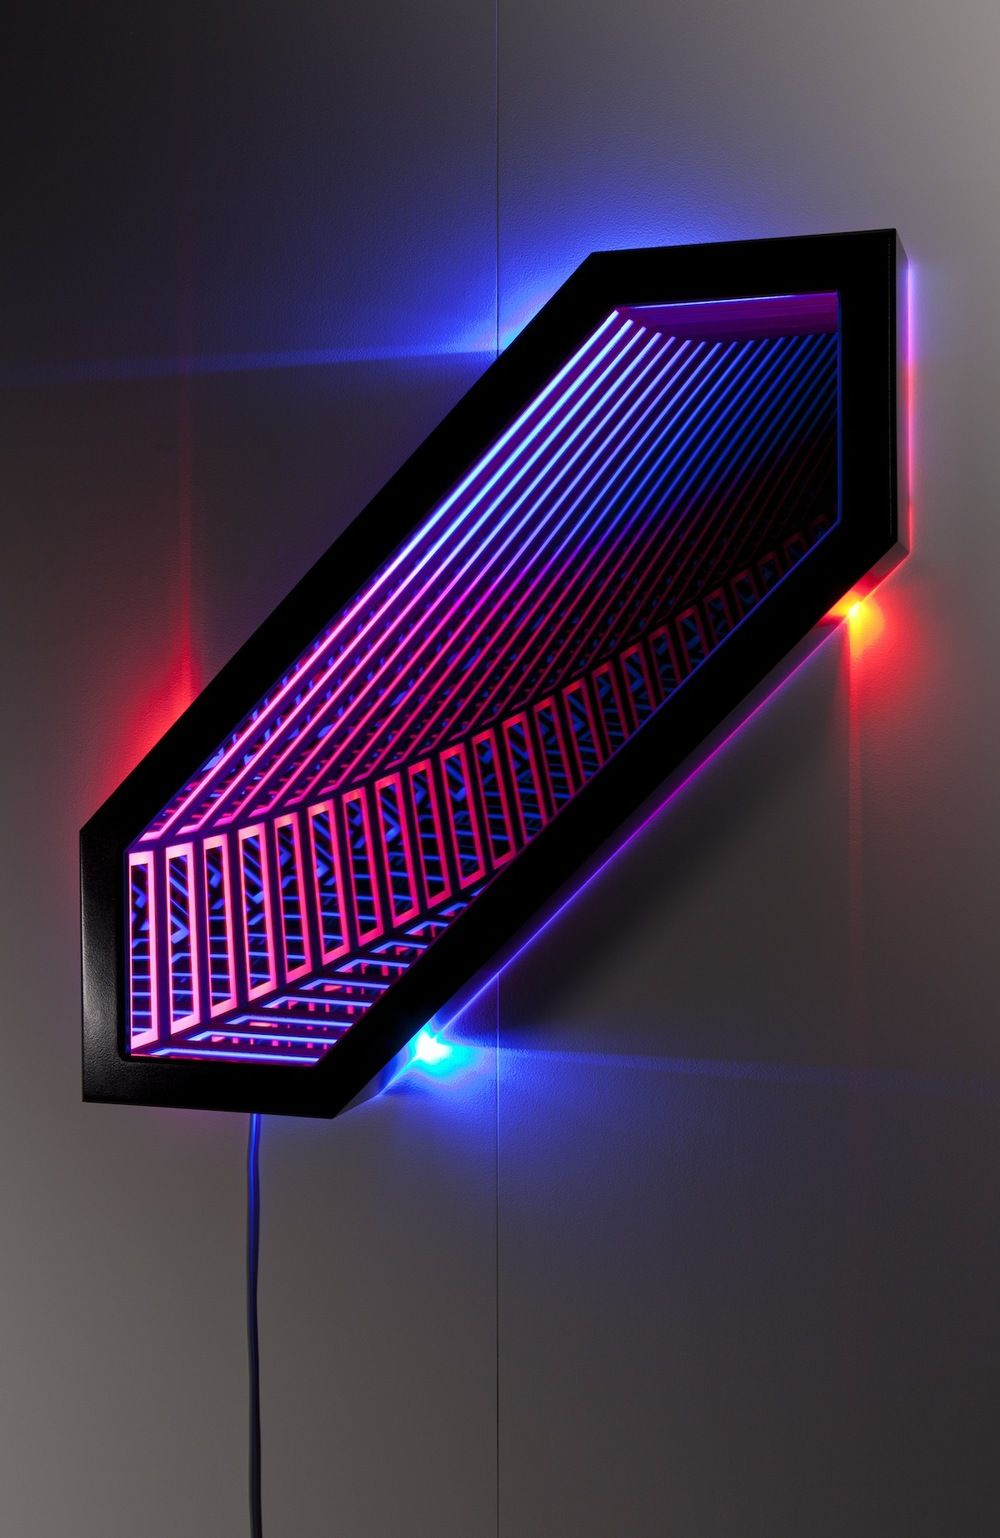 Led-leuchten Pin By John Pelo On Irridescent Rainbow Inspiration Lichtdesign